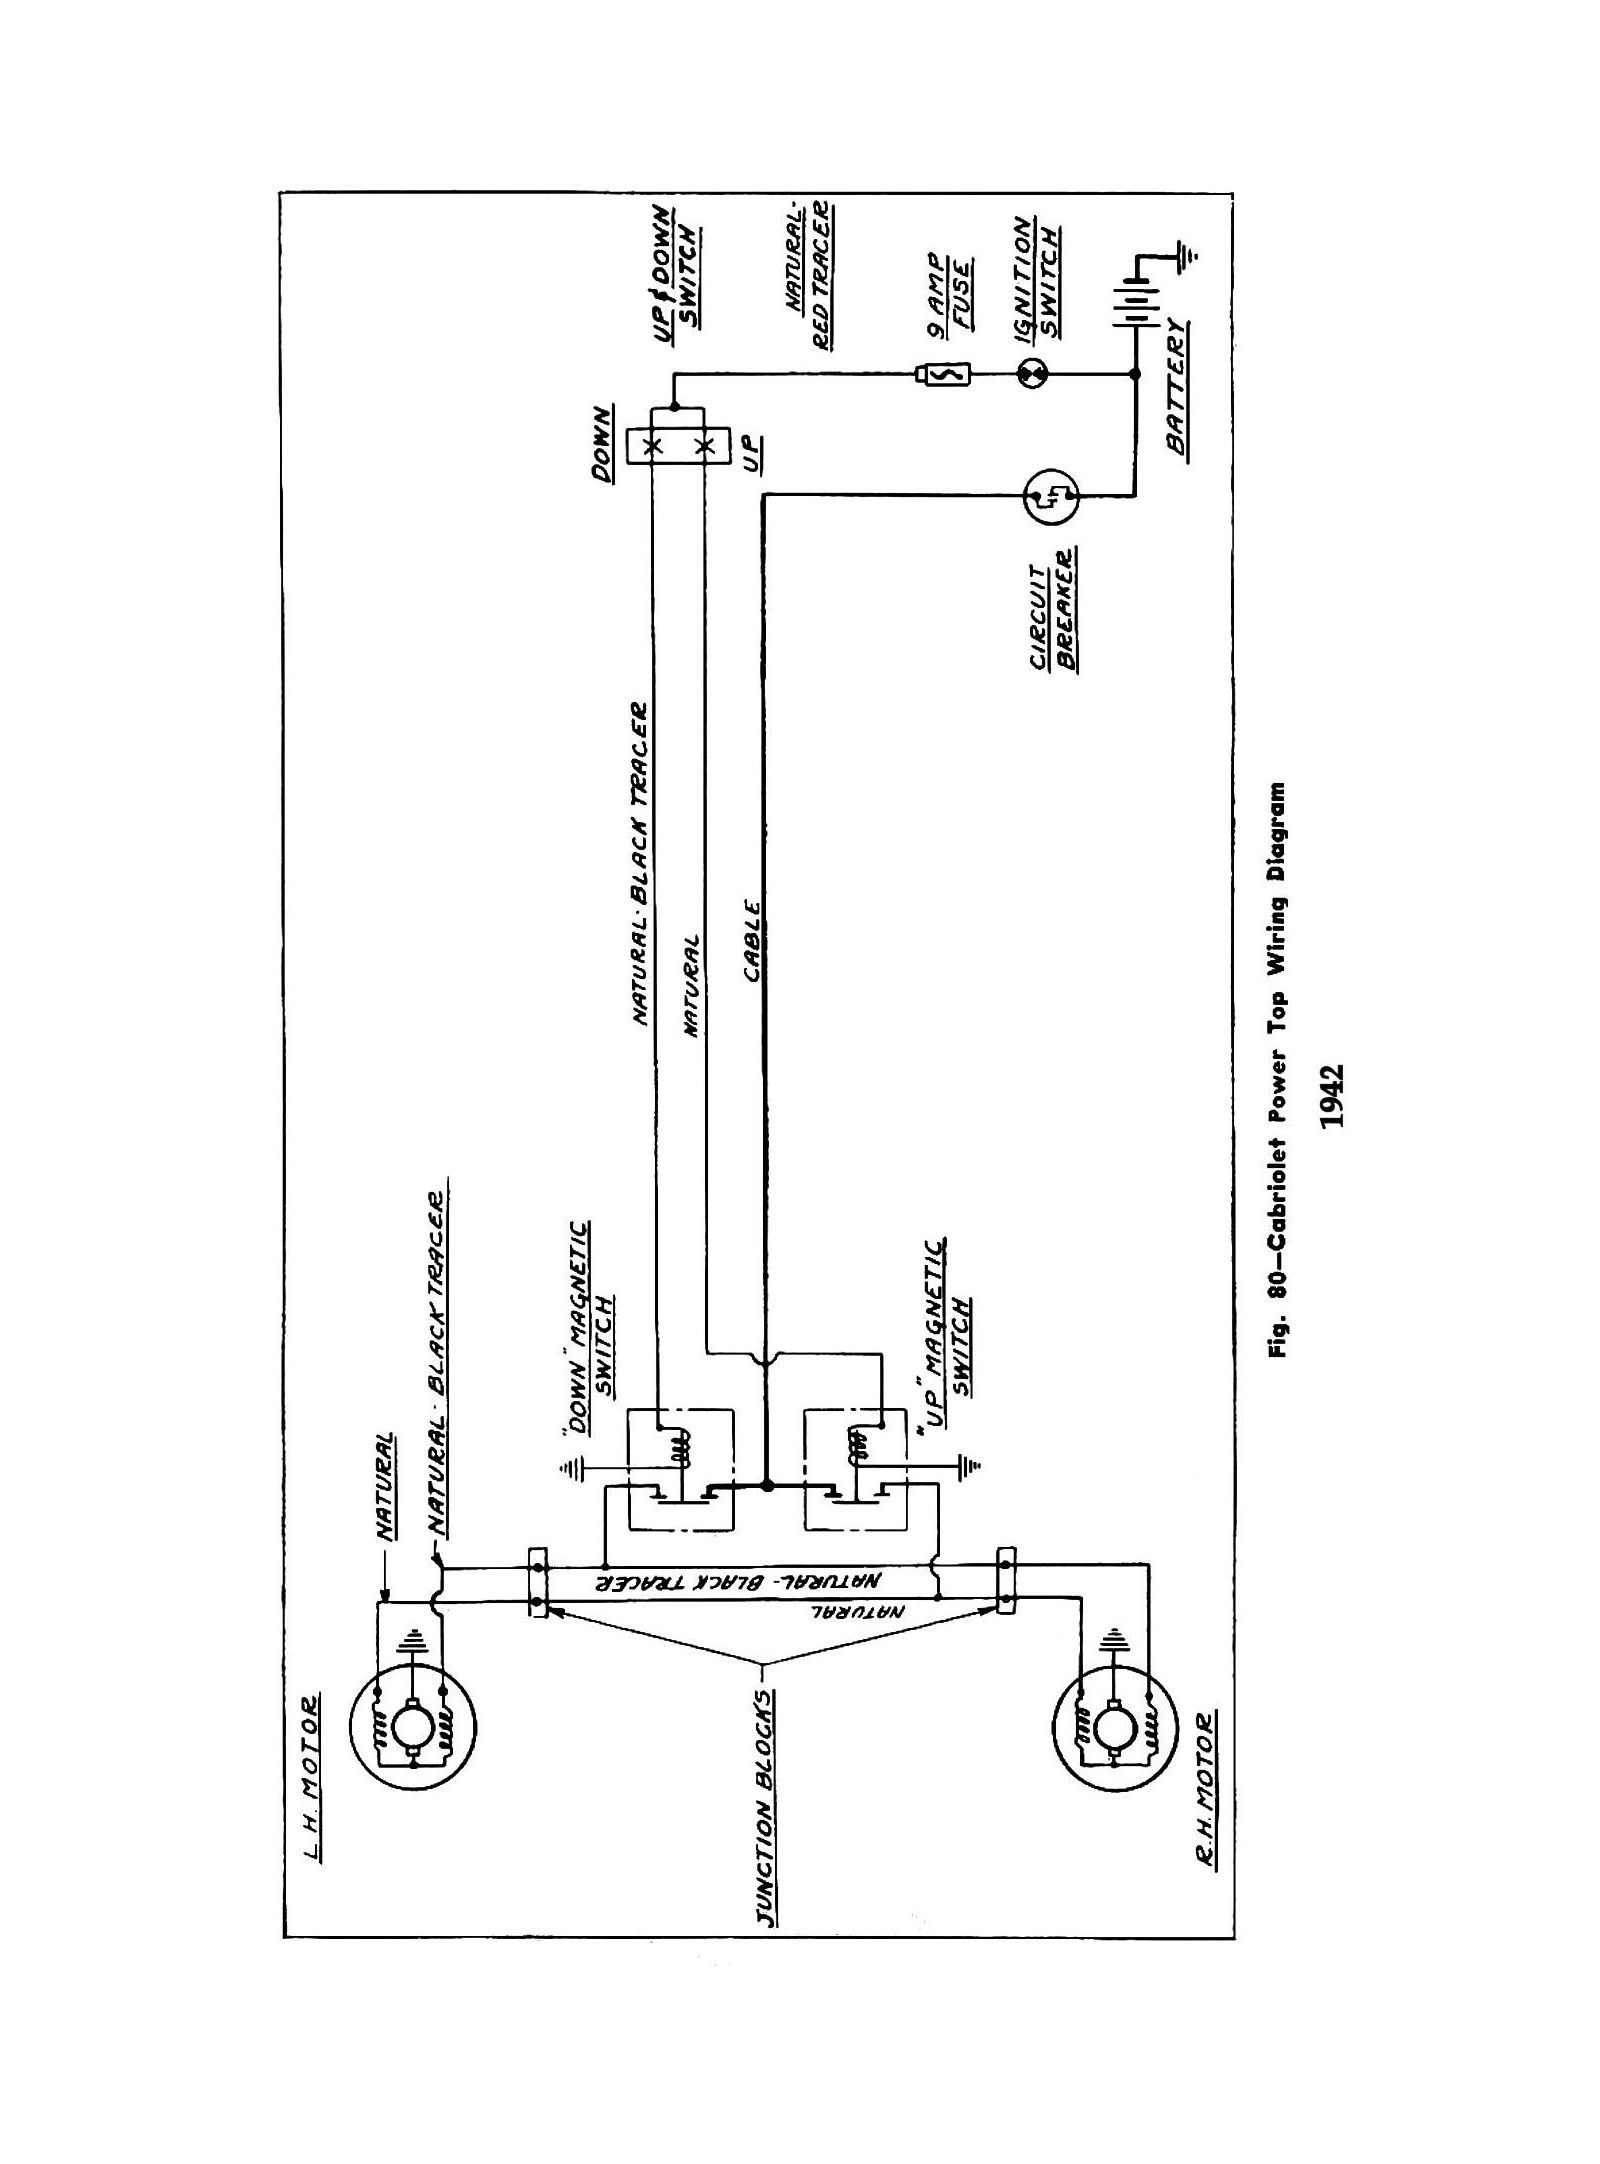 wiring diagram car likewise chevy ignition switch wiring